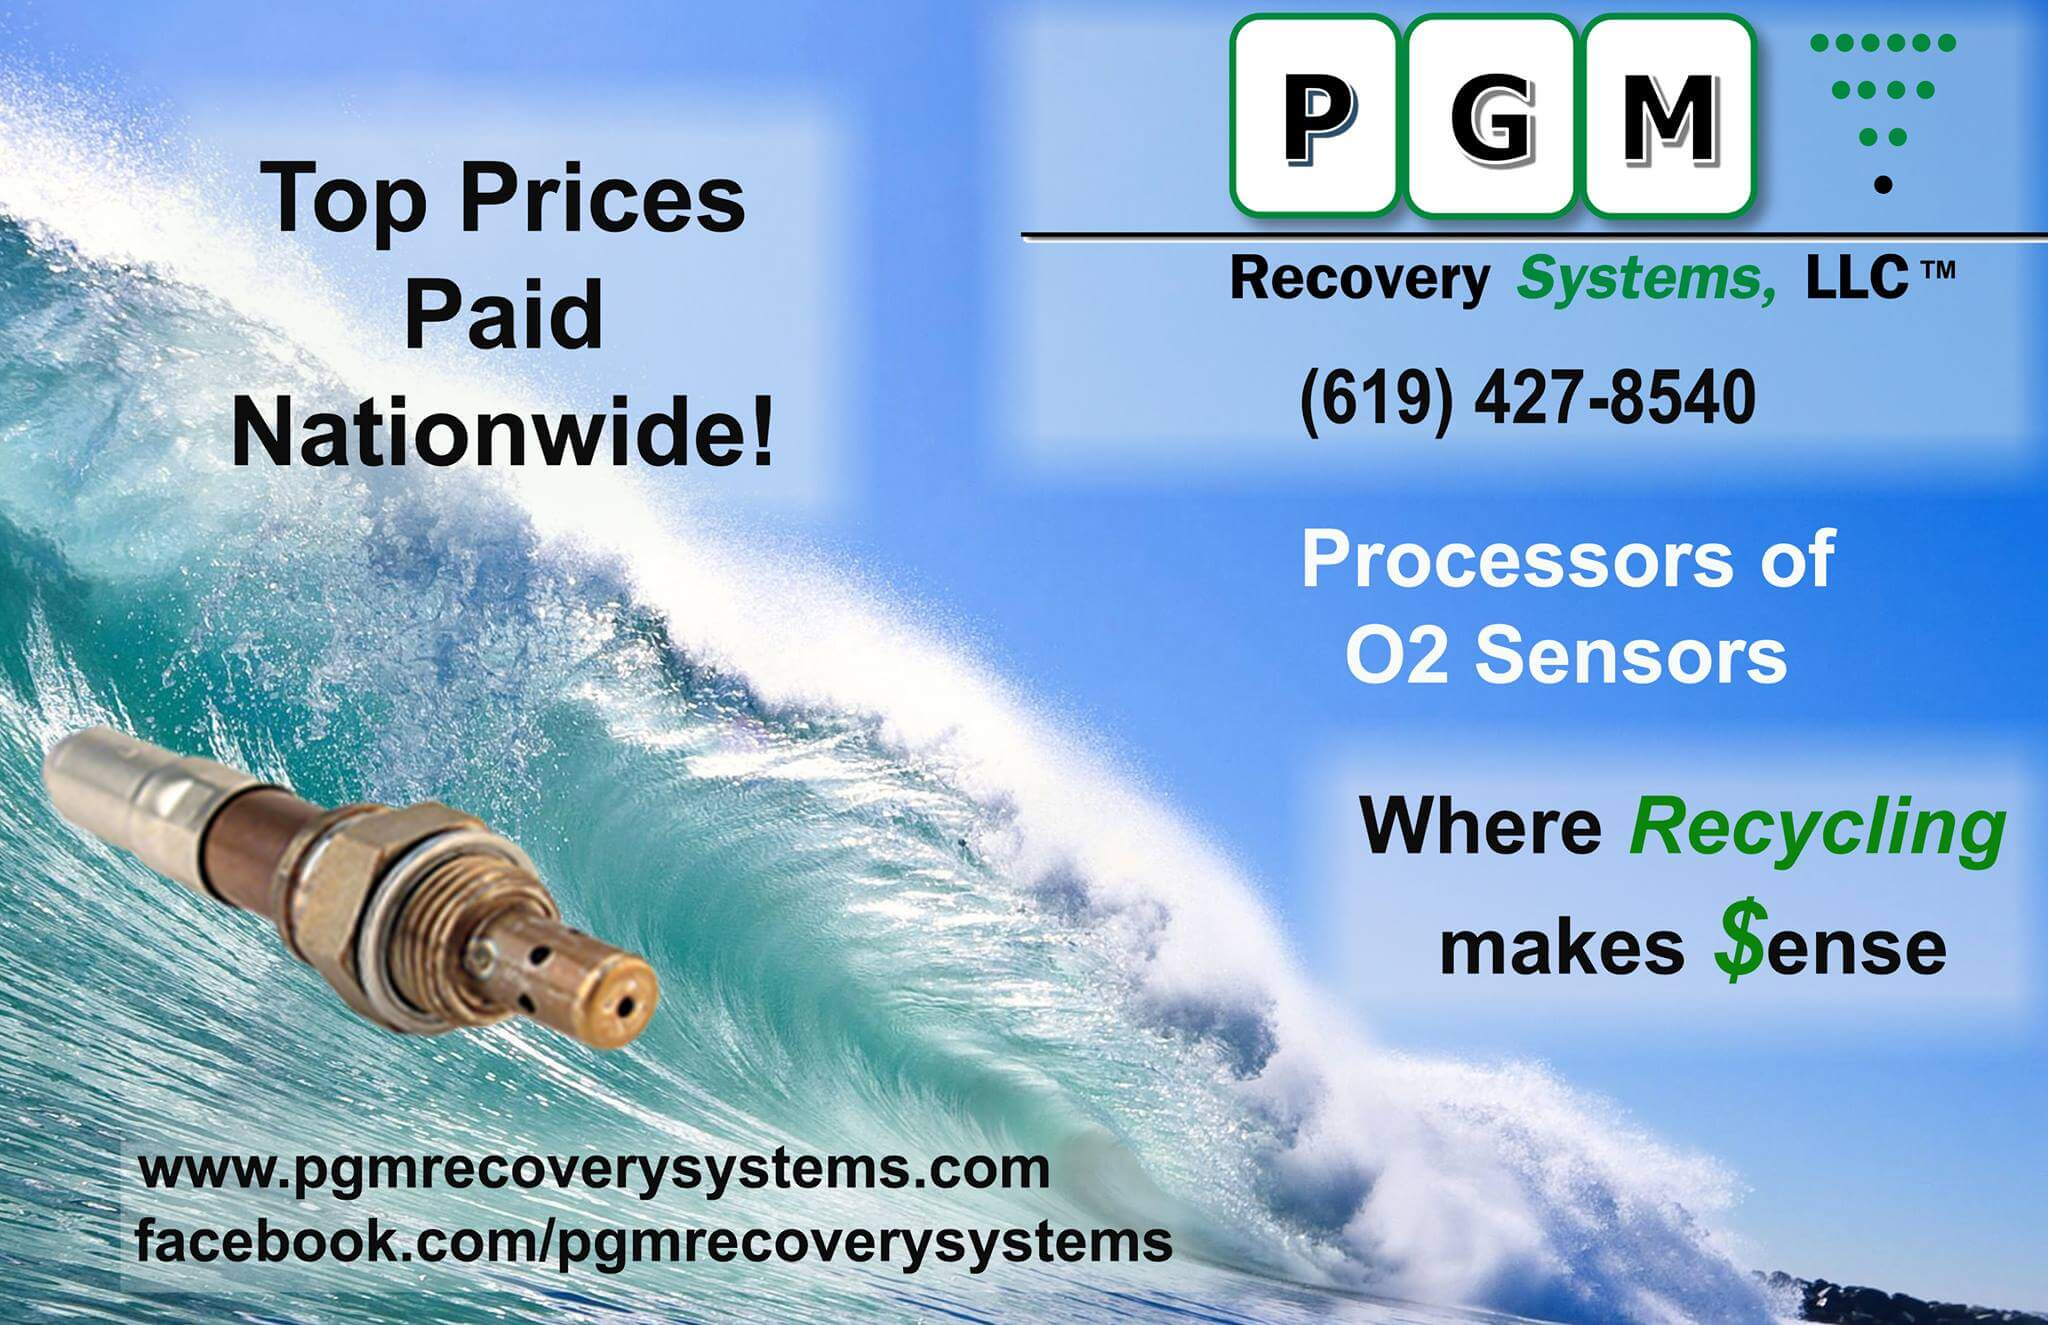 pgm recycle o2 sensors ad pgm recovery systems